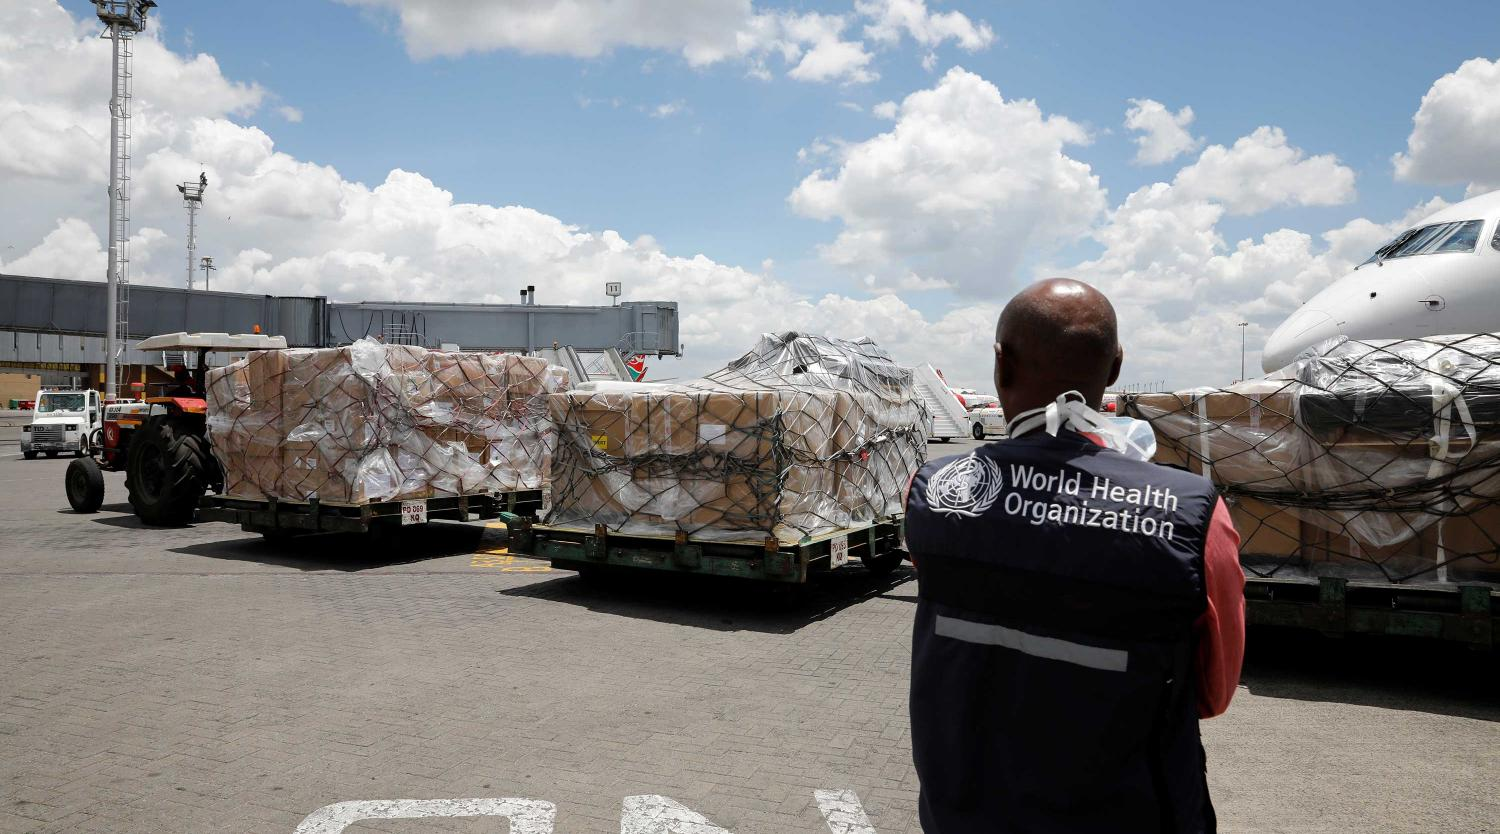 A world health organization (WHO) worker watches as a shipment of medical supplies arrive in Africa to fight the coronavirus disease (COVID-19). Nairobi, Kenya, March 24, 2020. REUTERS/Baz Ratner